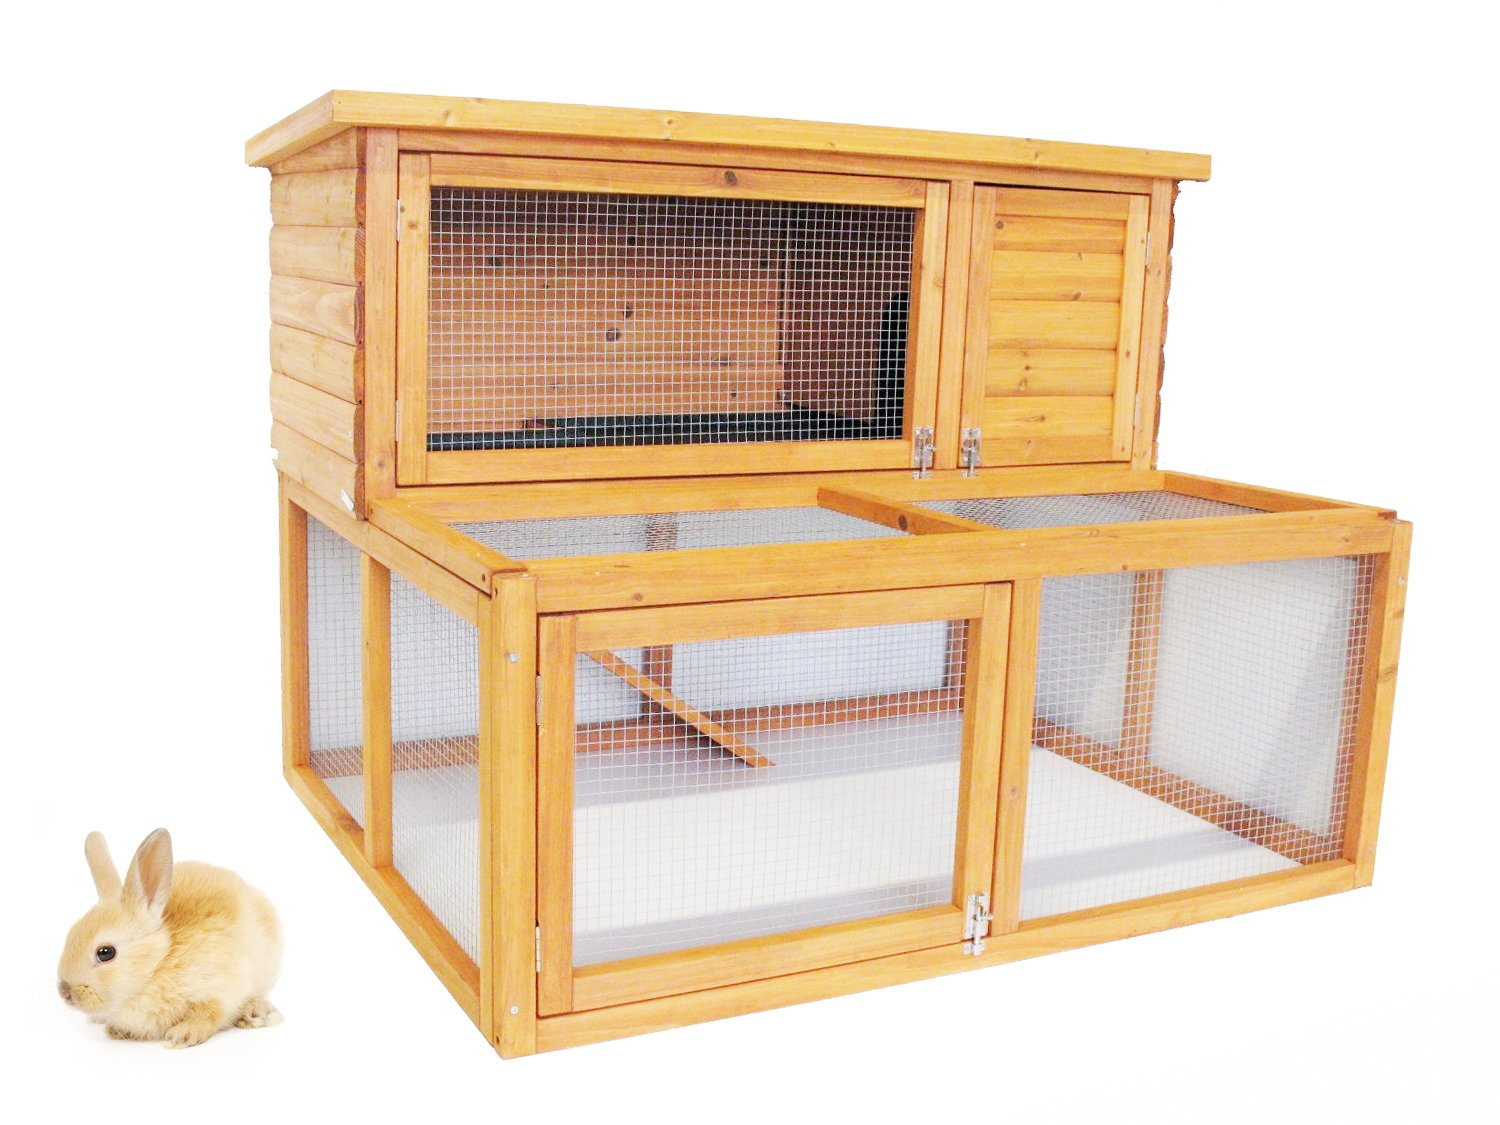 Rabbit hutch 2 tier extended guinea pig pet house with for 2 rabbit hutch